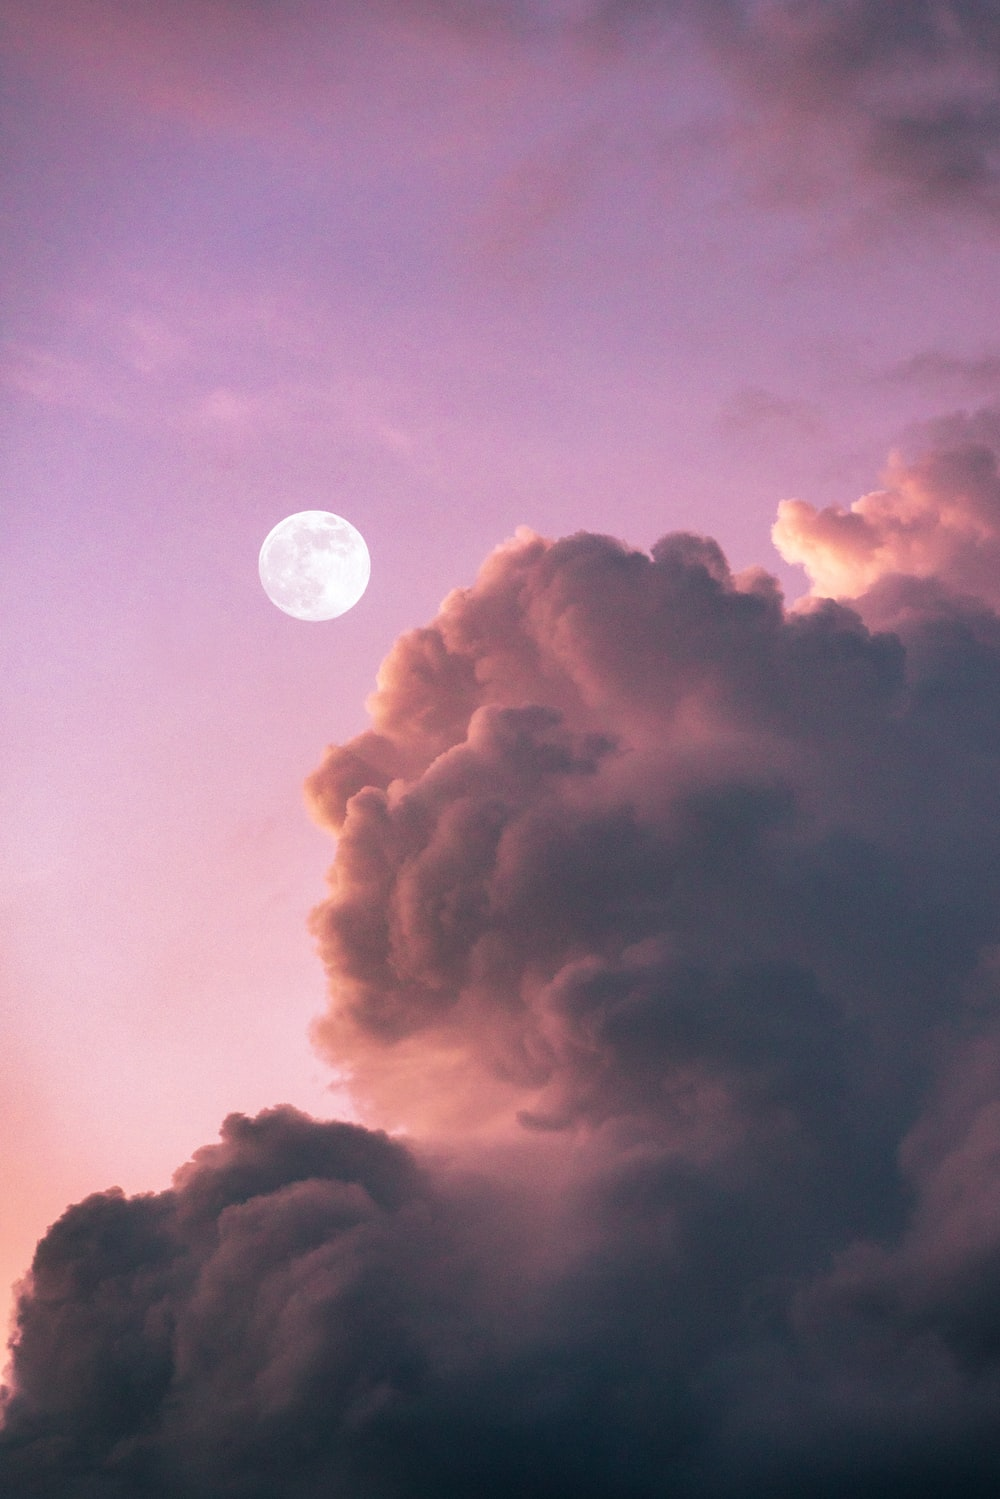 full moon over clouds during night time